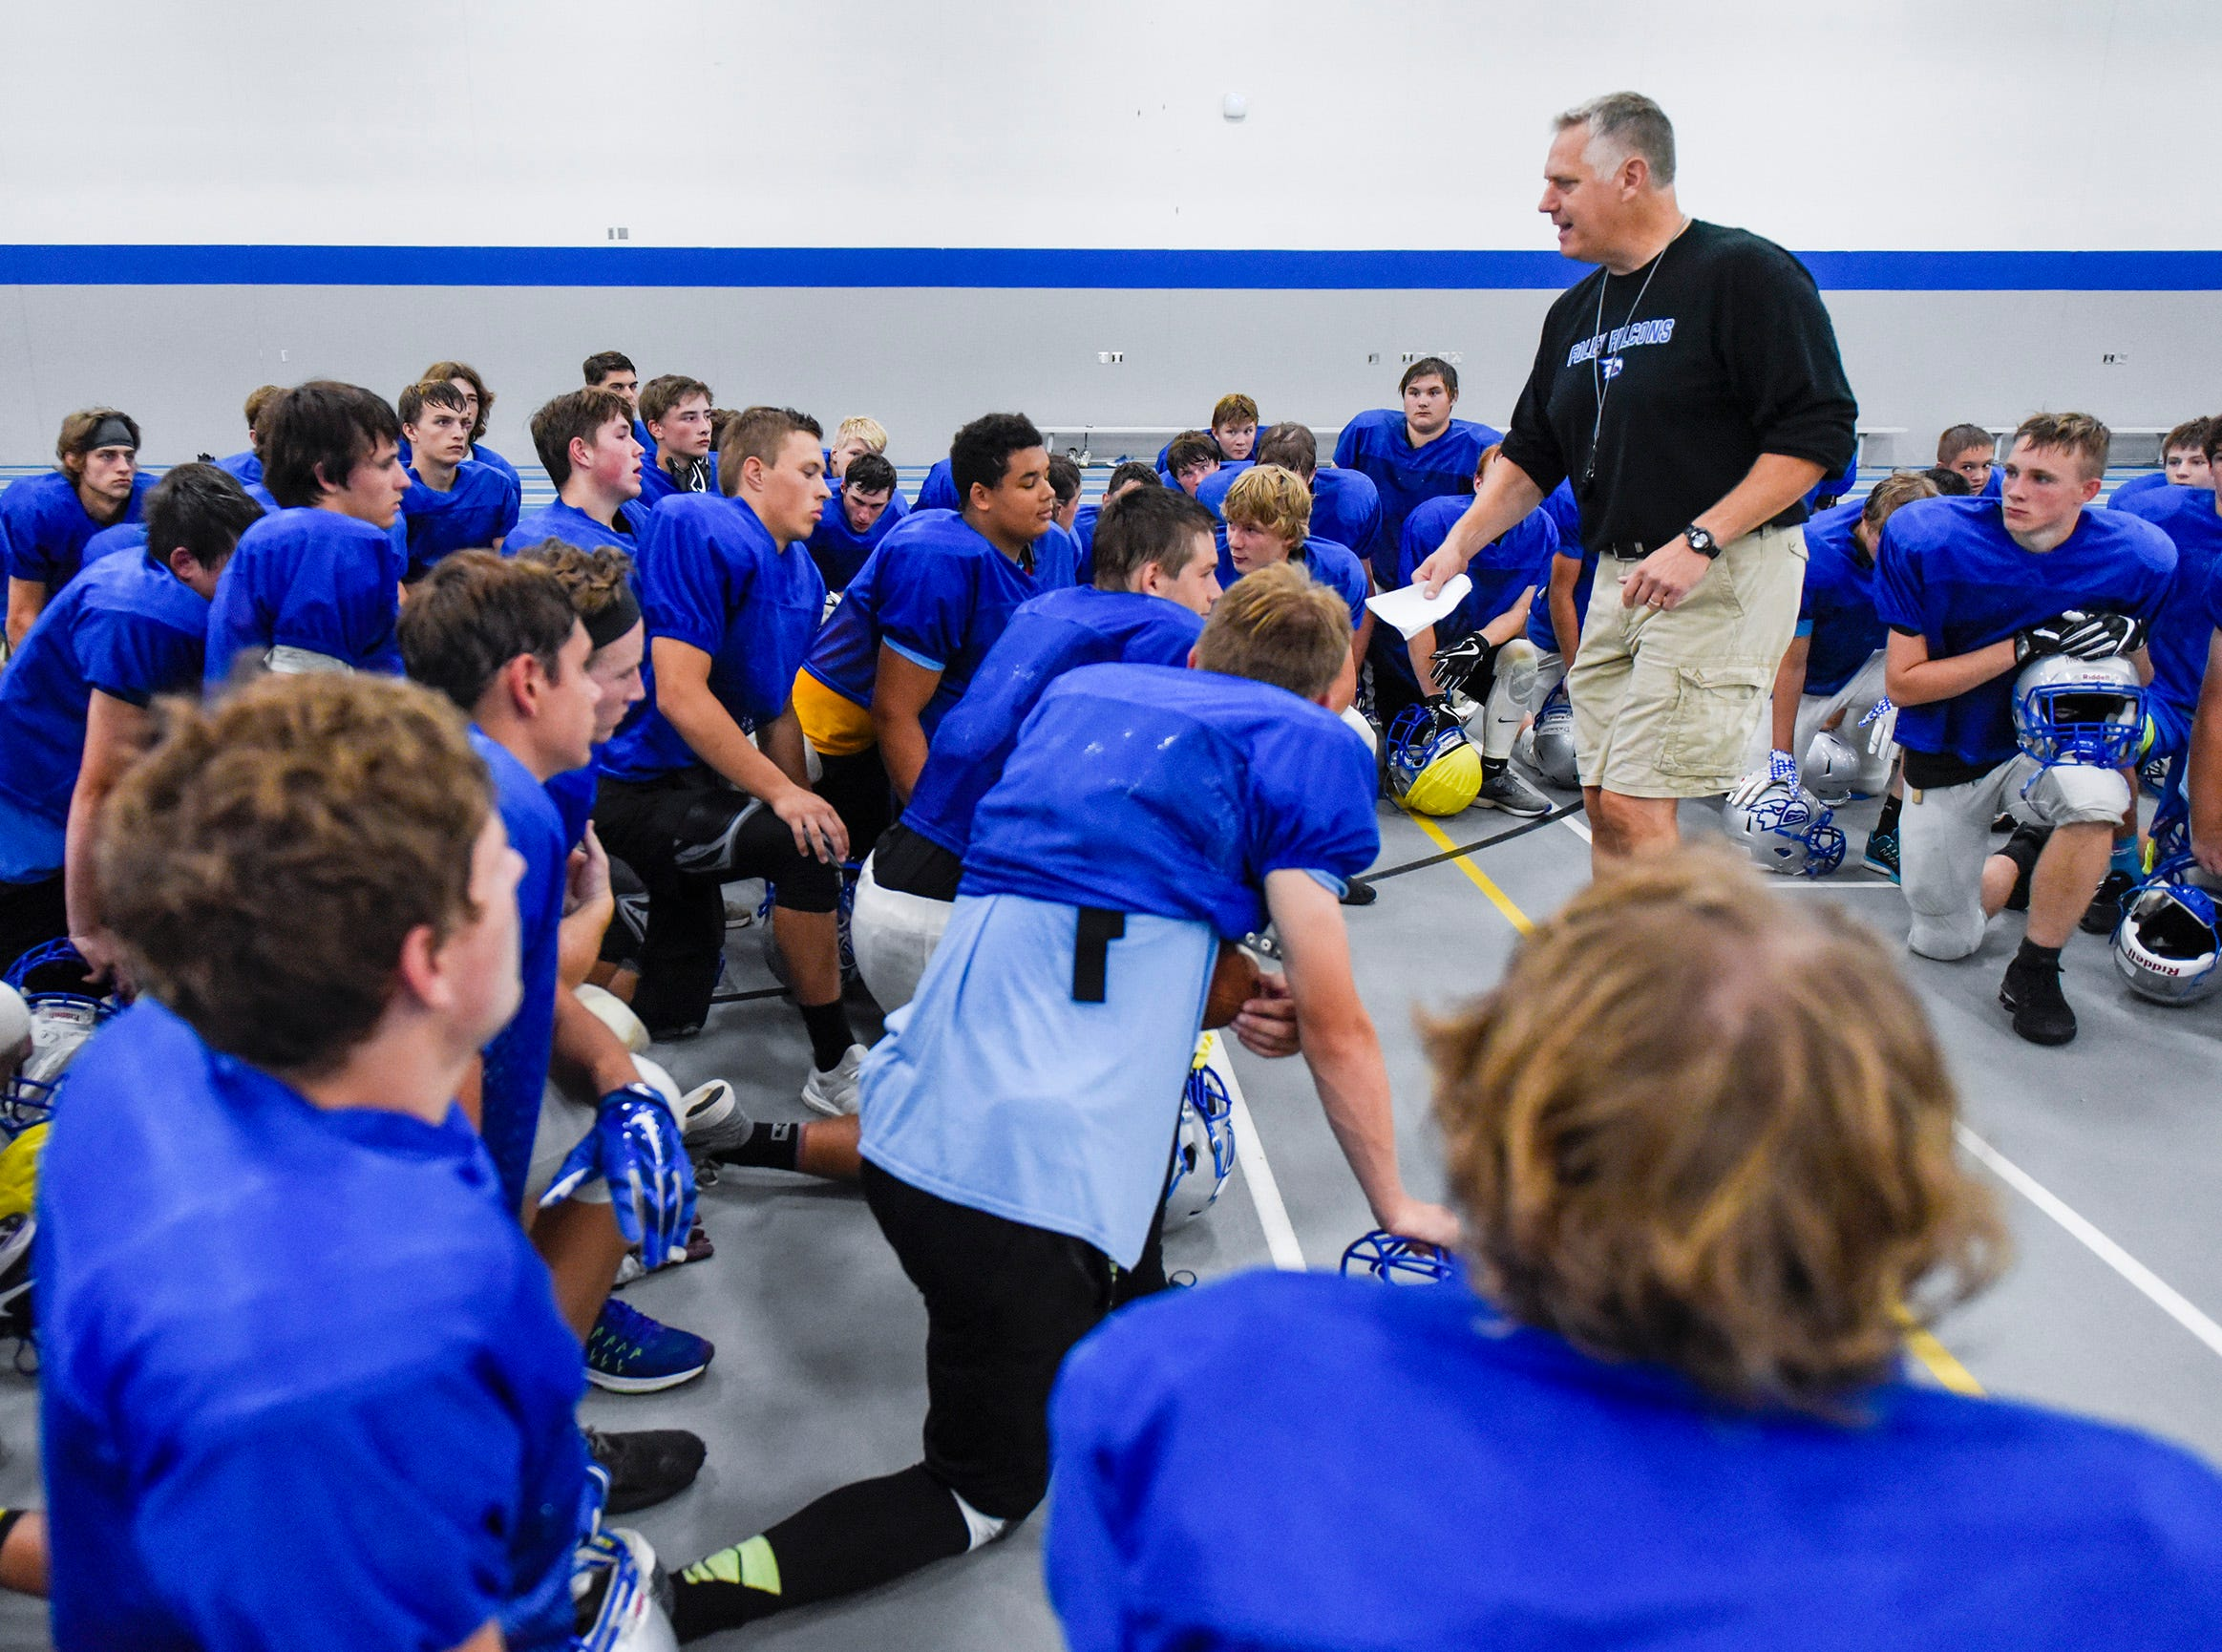 Foley coach Dave Dahlstrom talks with players during a break Monday, Aug. 20, at the Foley High School.